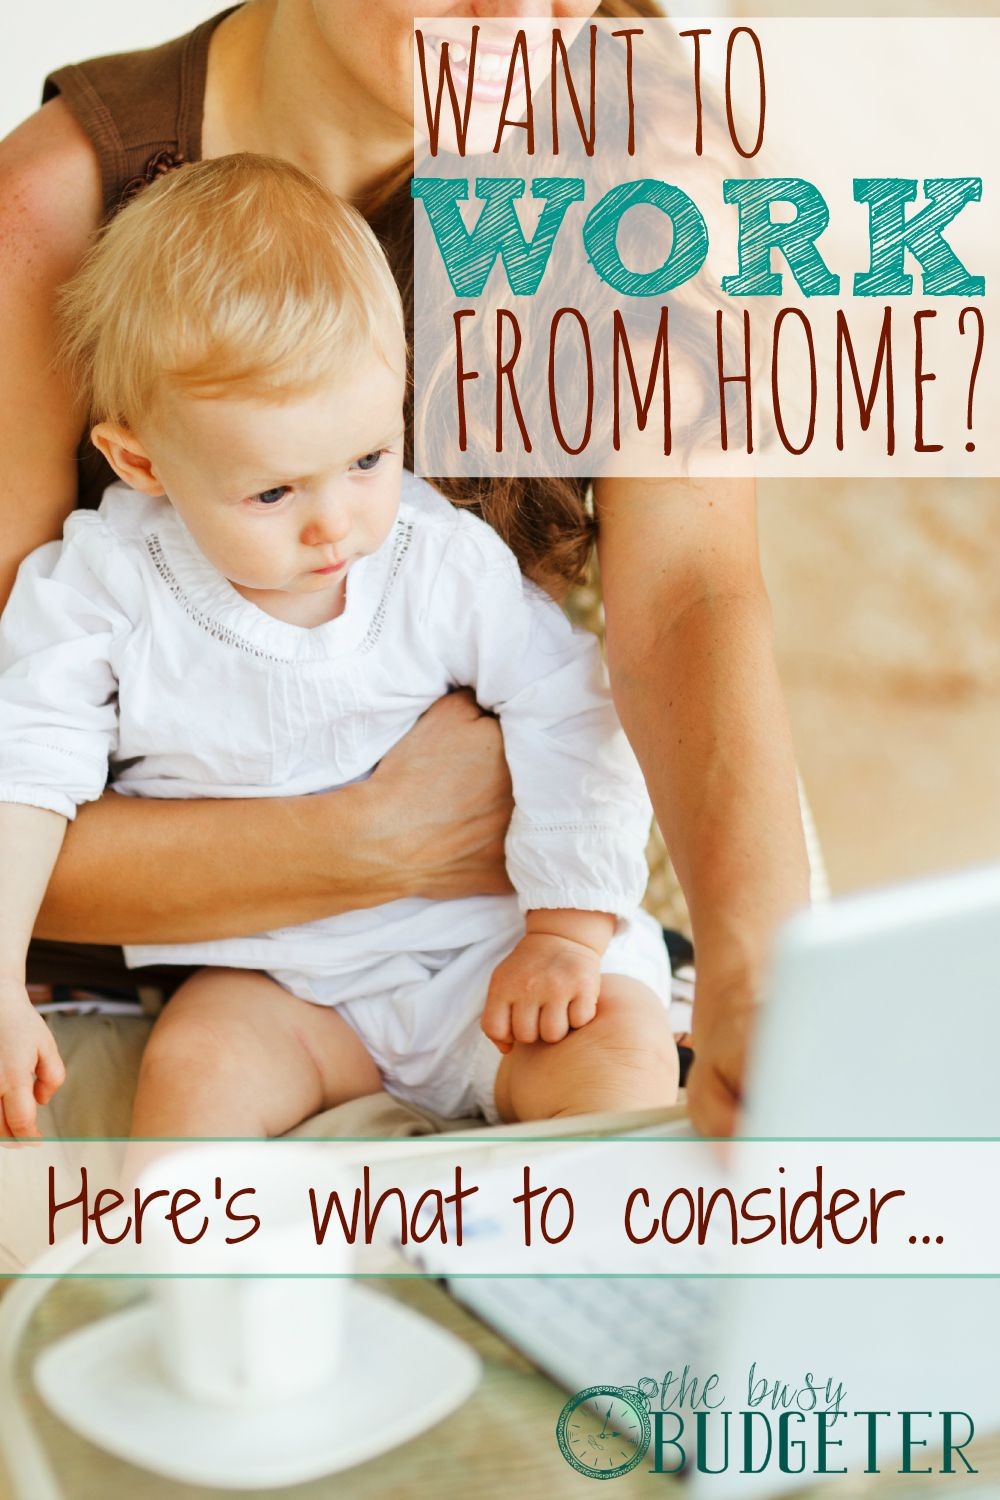 Want to work from home? Here's what to consider...